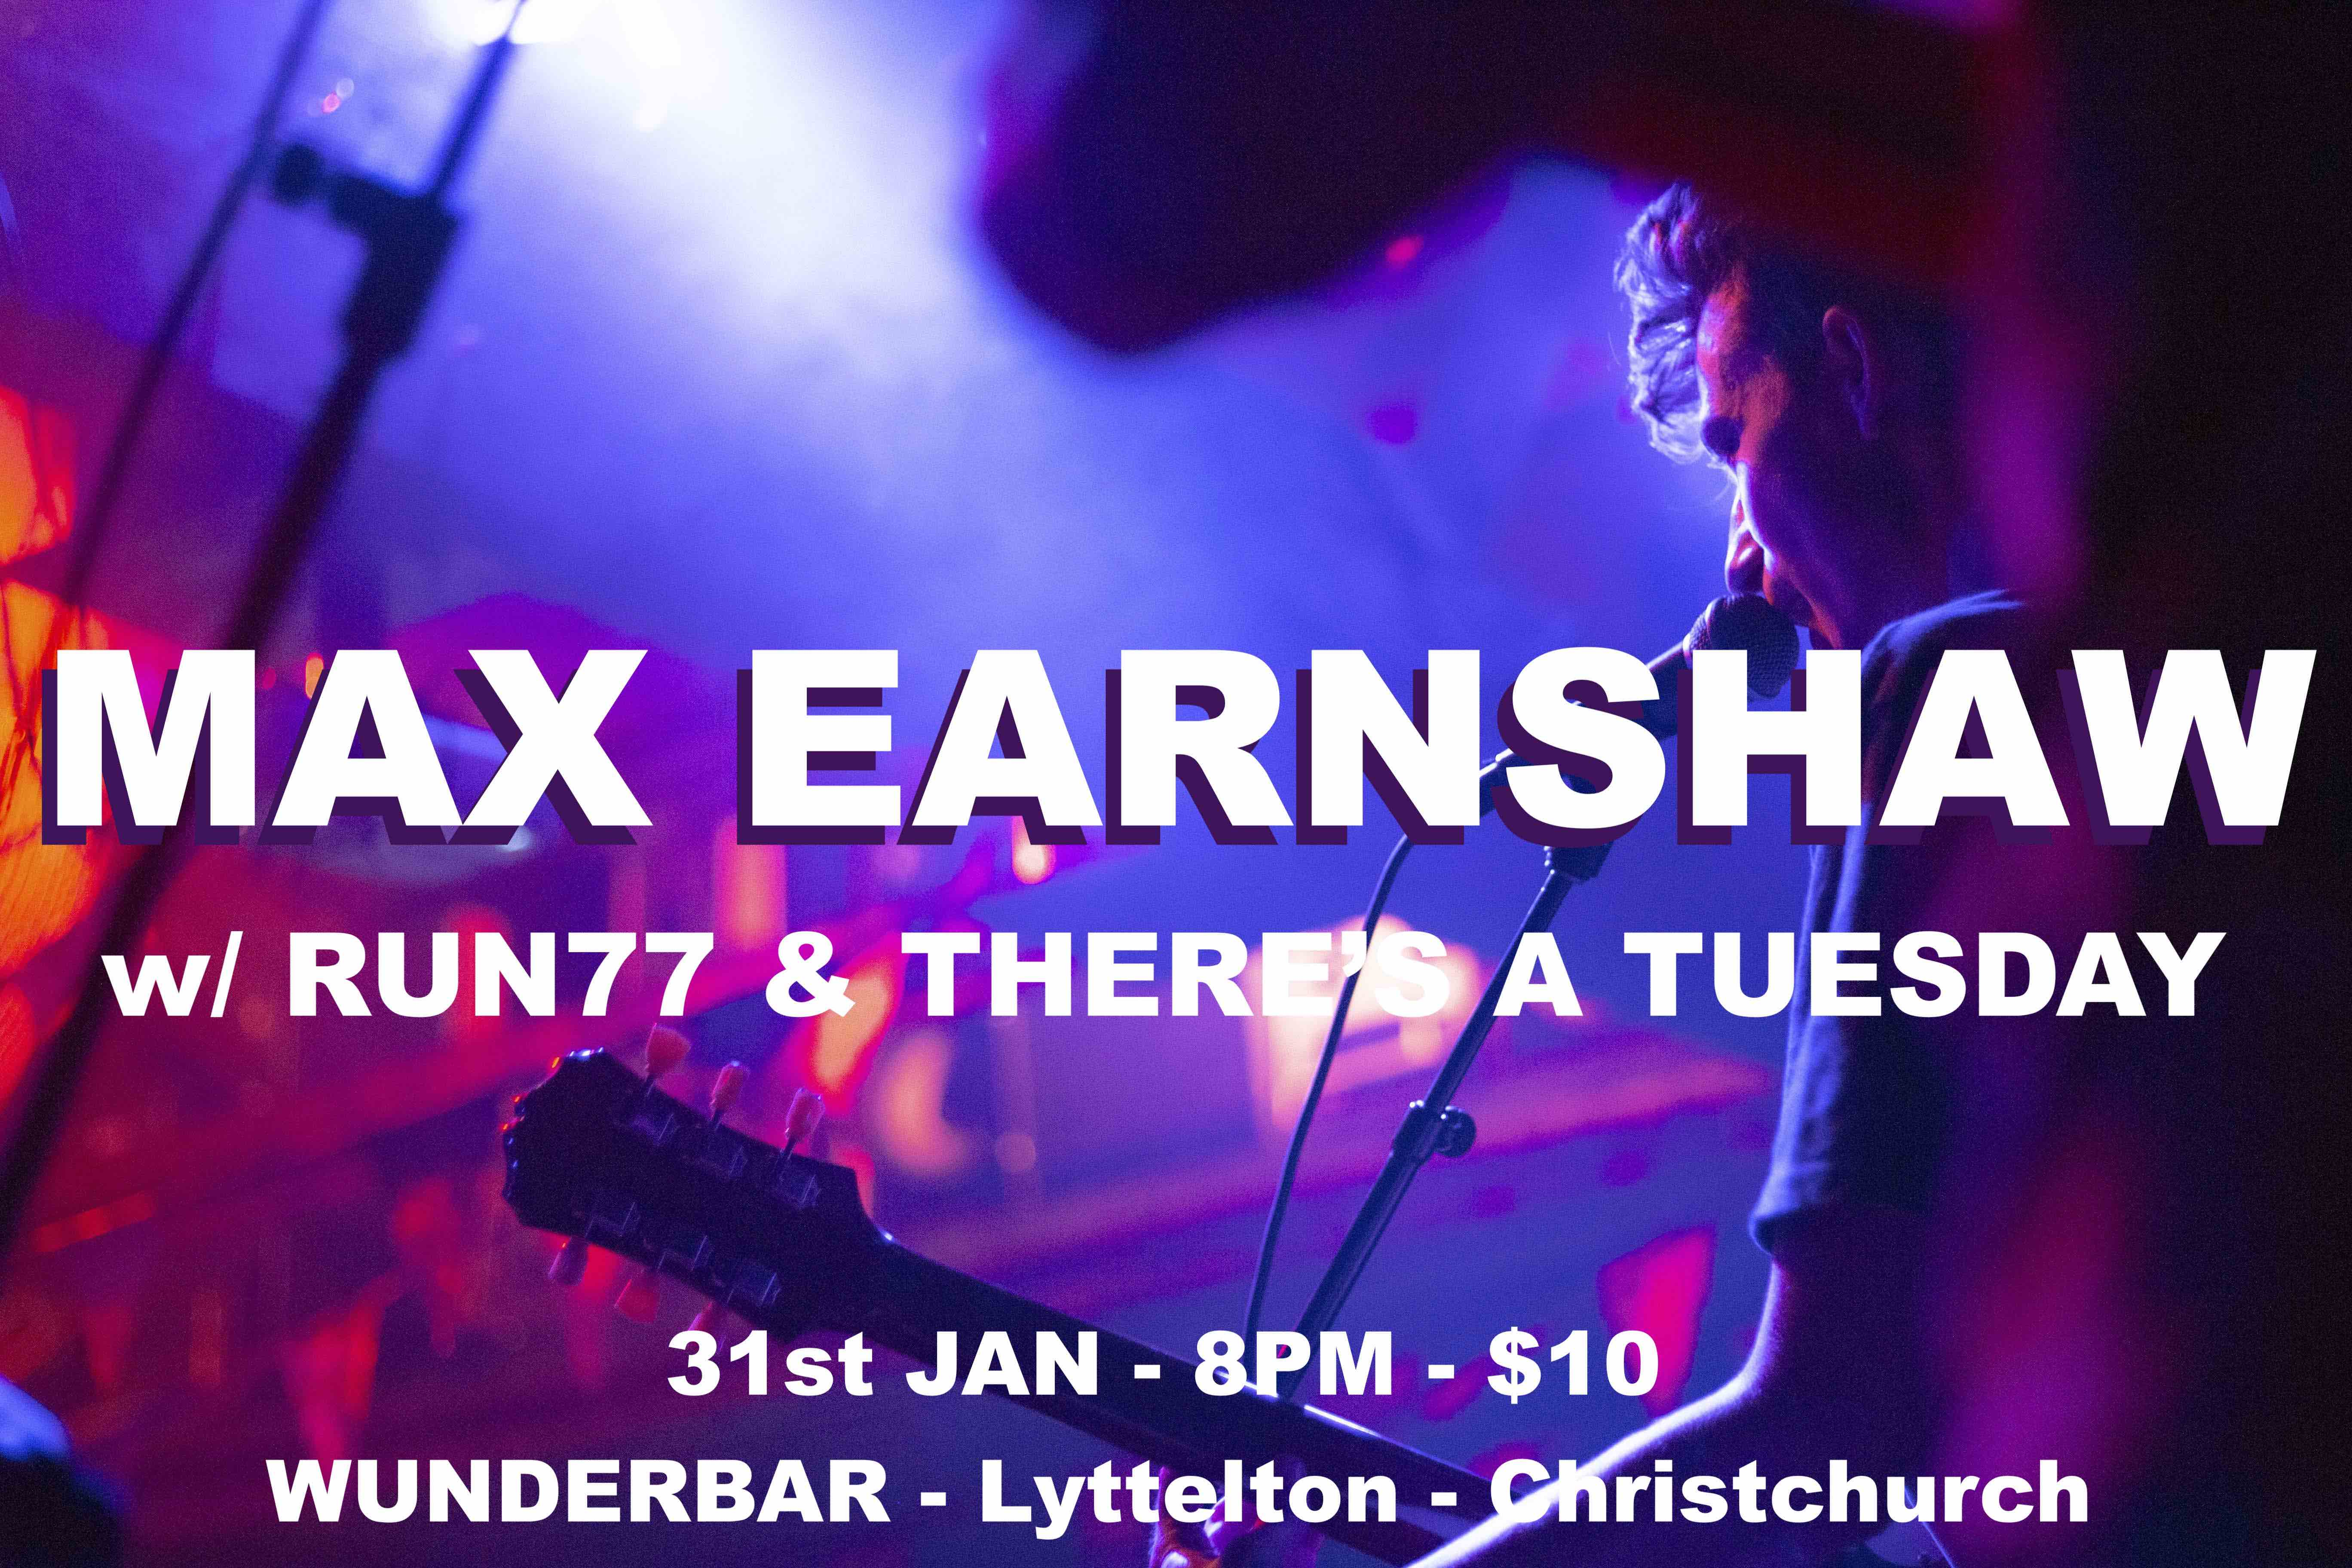 Max Earnshaw w/ Run77 and There's A Tuesday